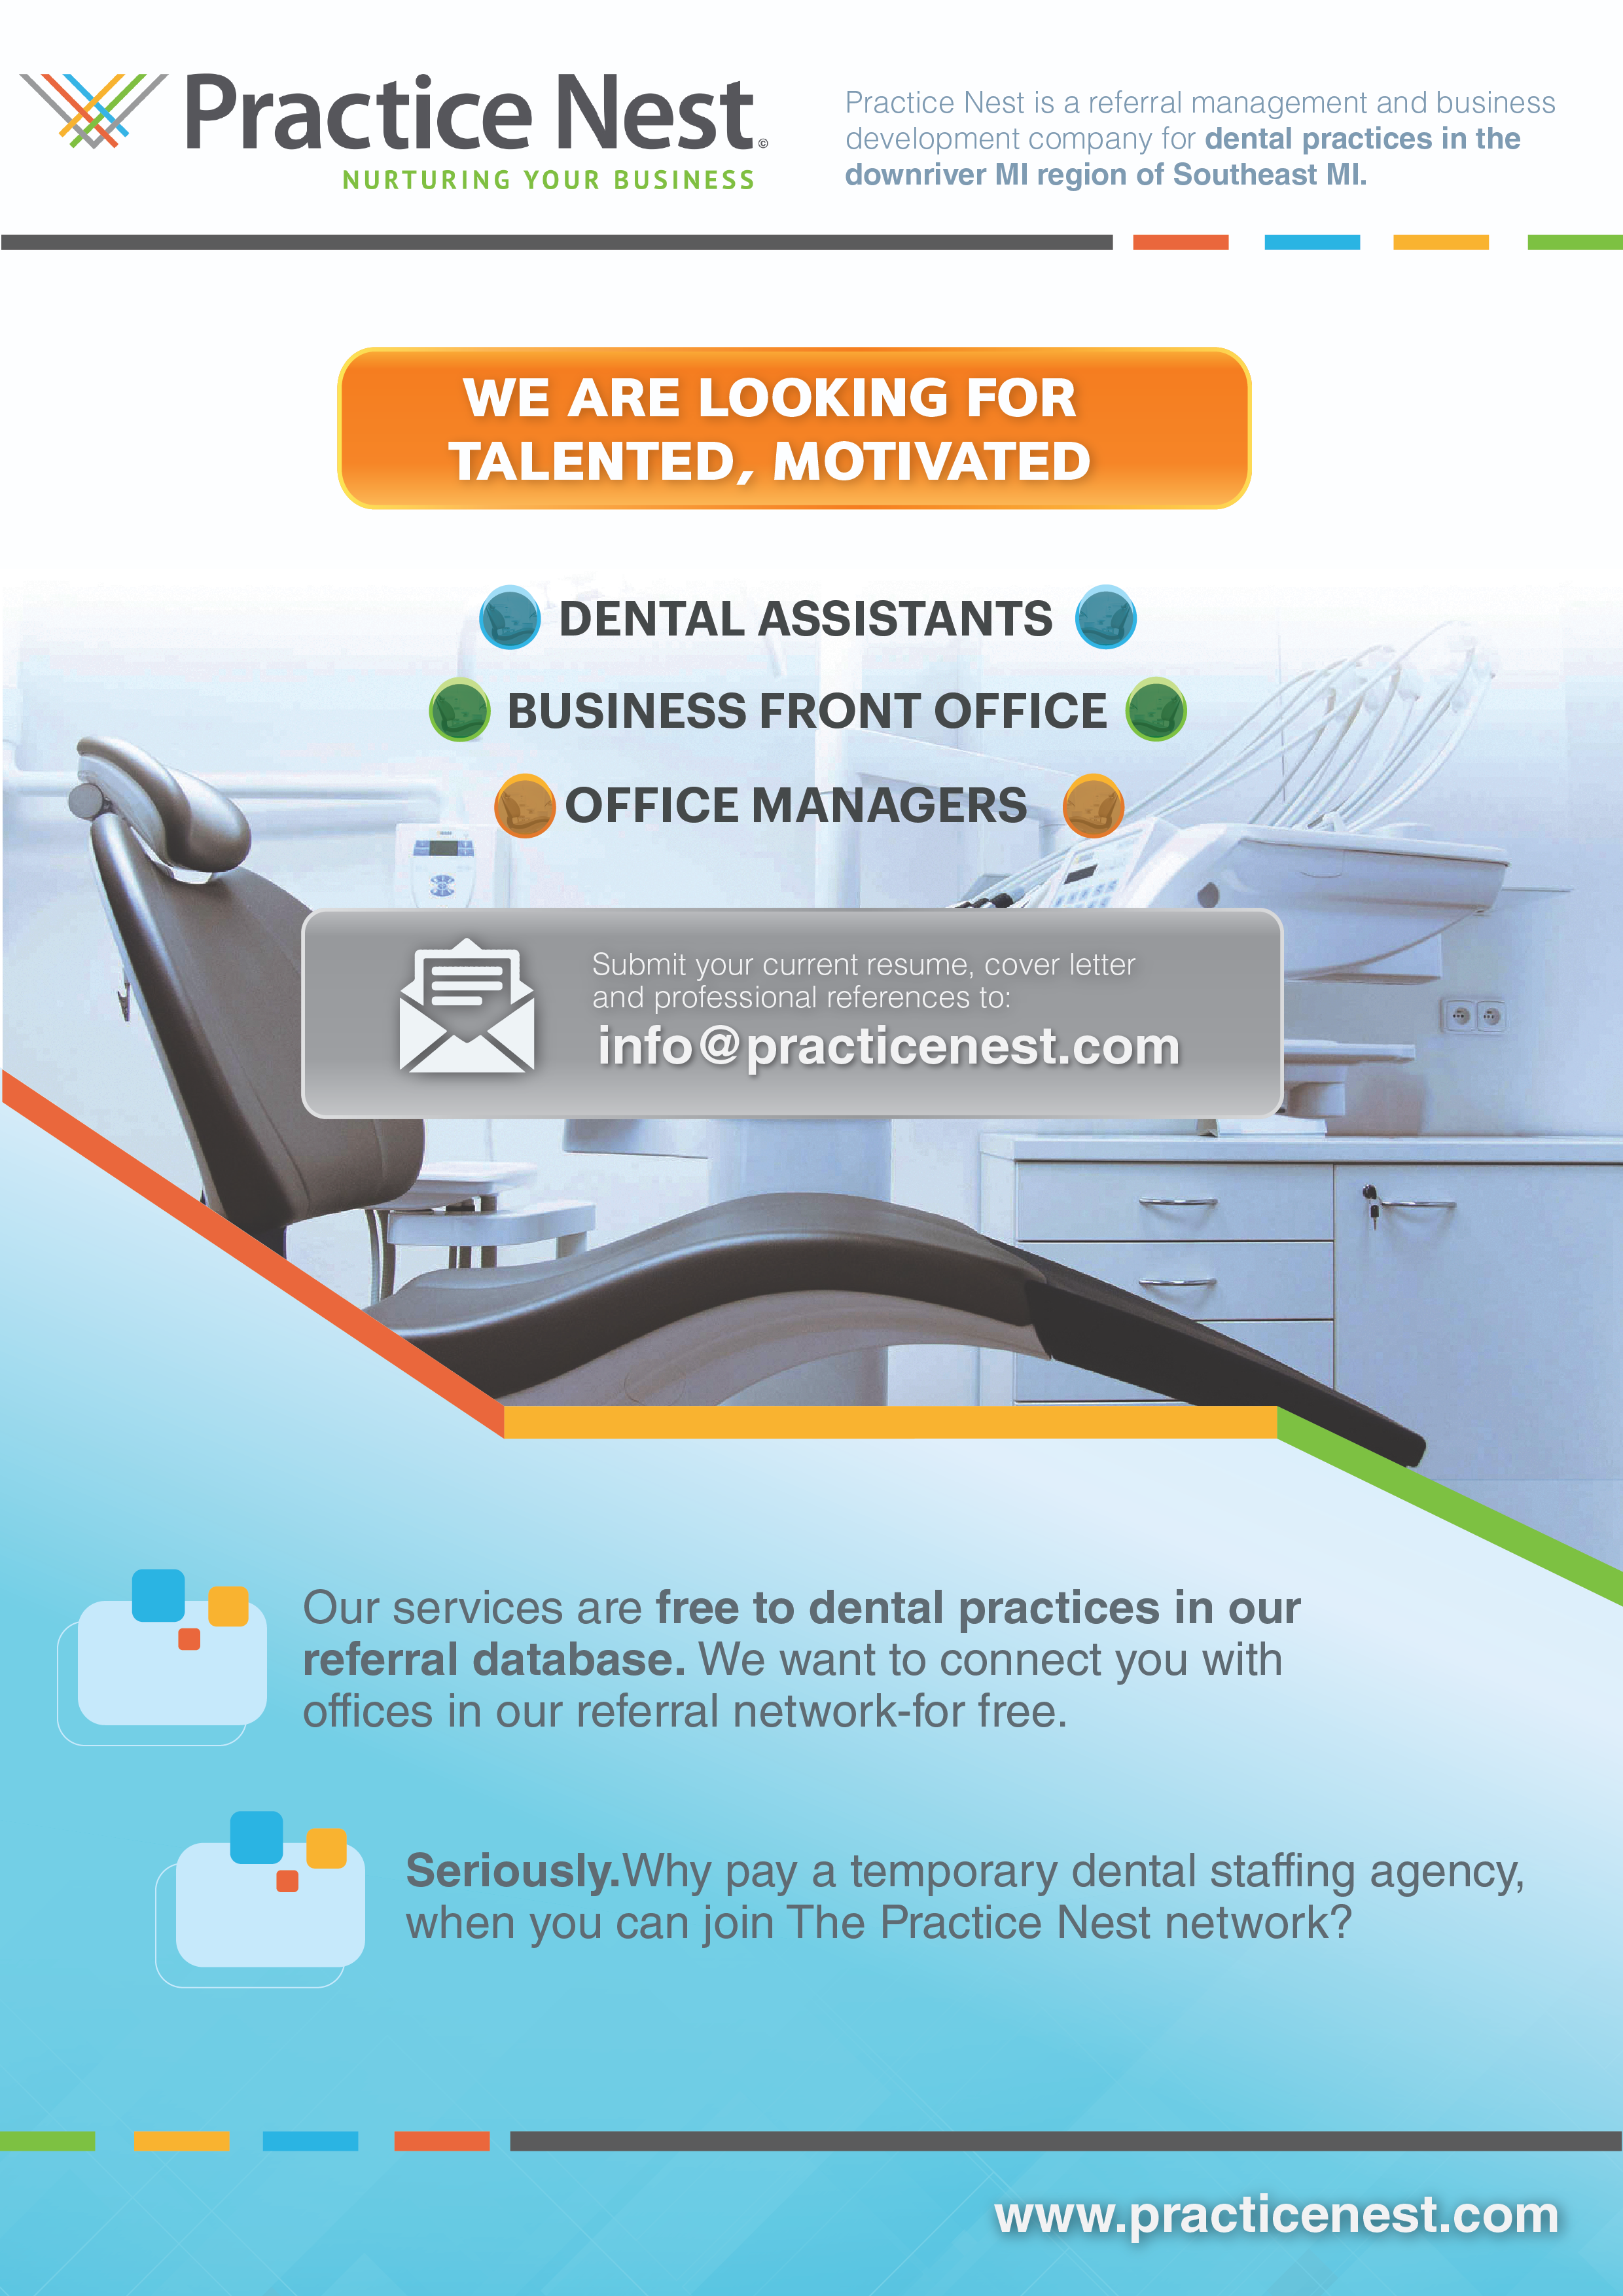 A Fresh Dental Business Company, Looking for Hip Ad to Attract Talent